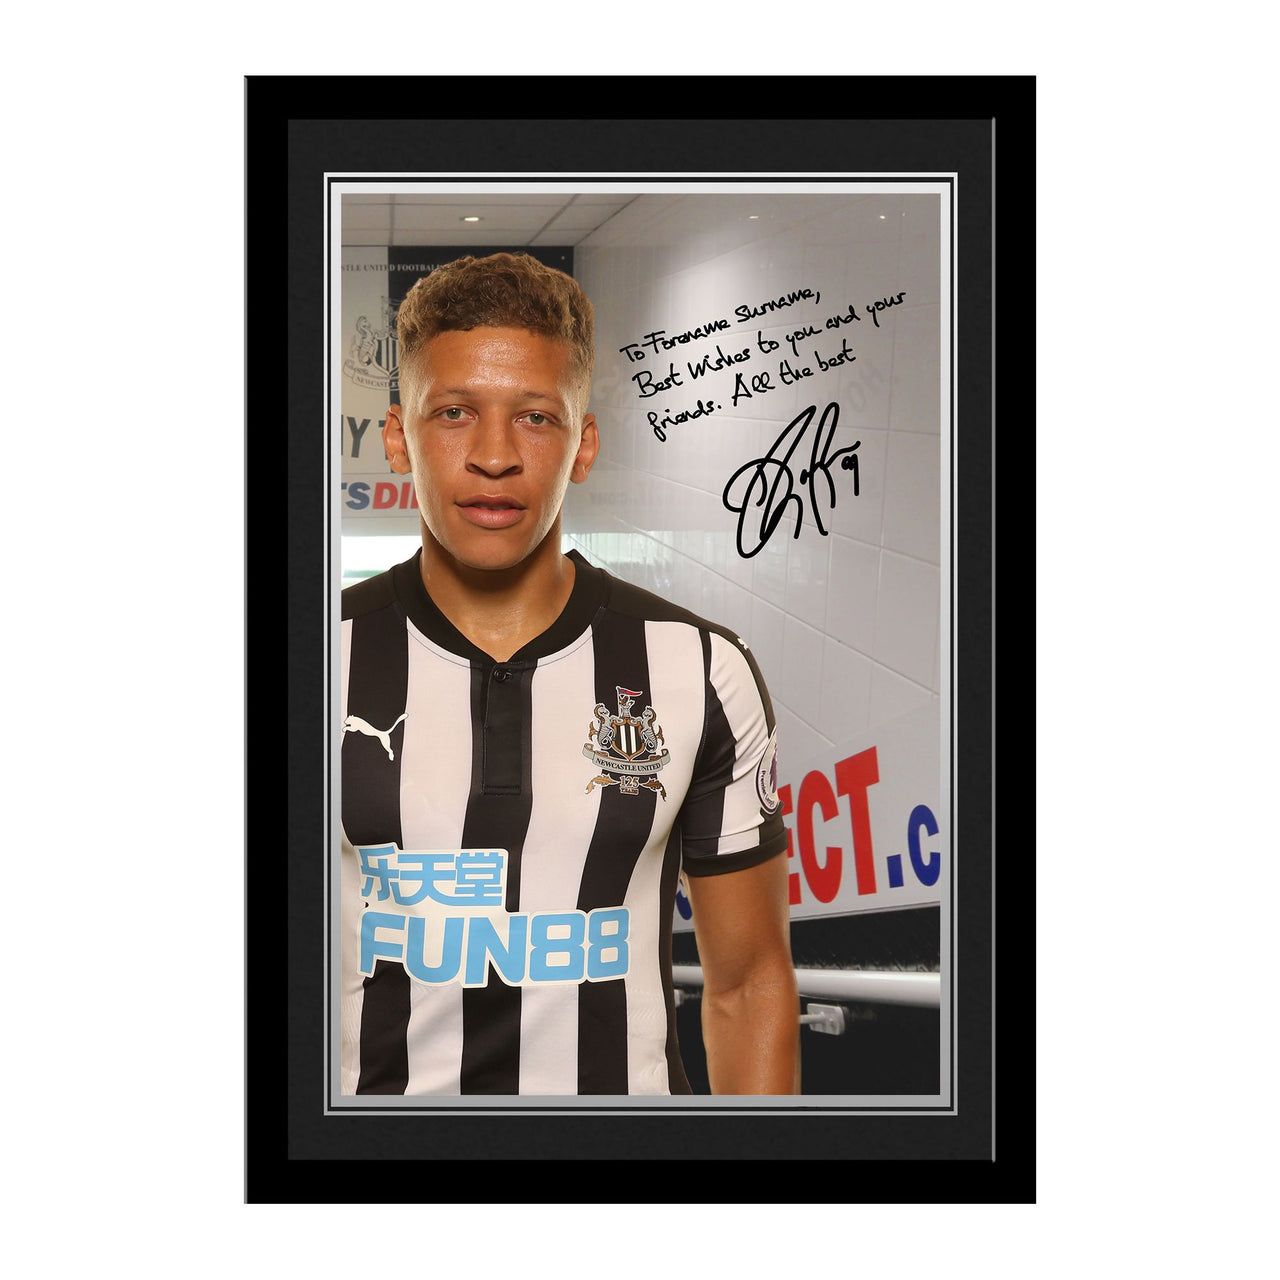 Newcastle United FC Gayle Autograph Photo Framed